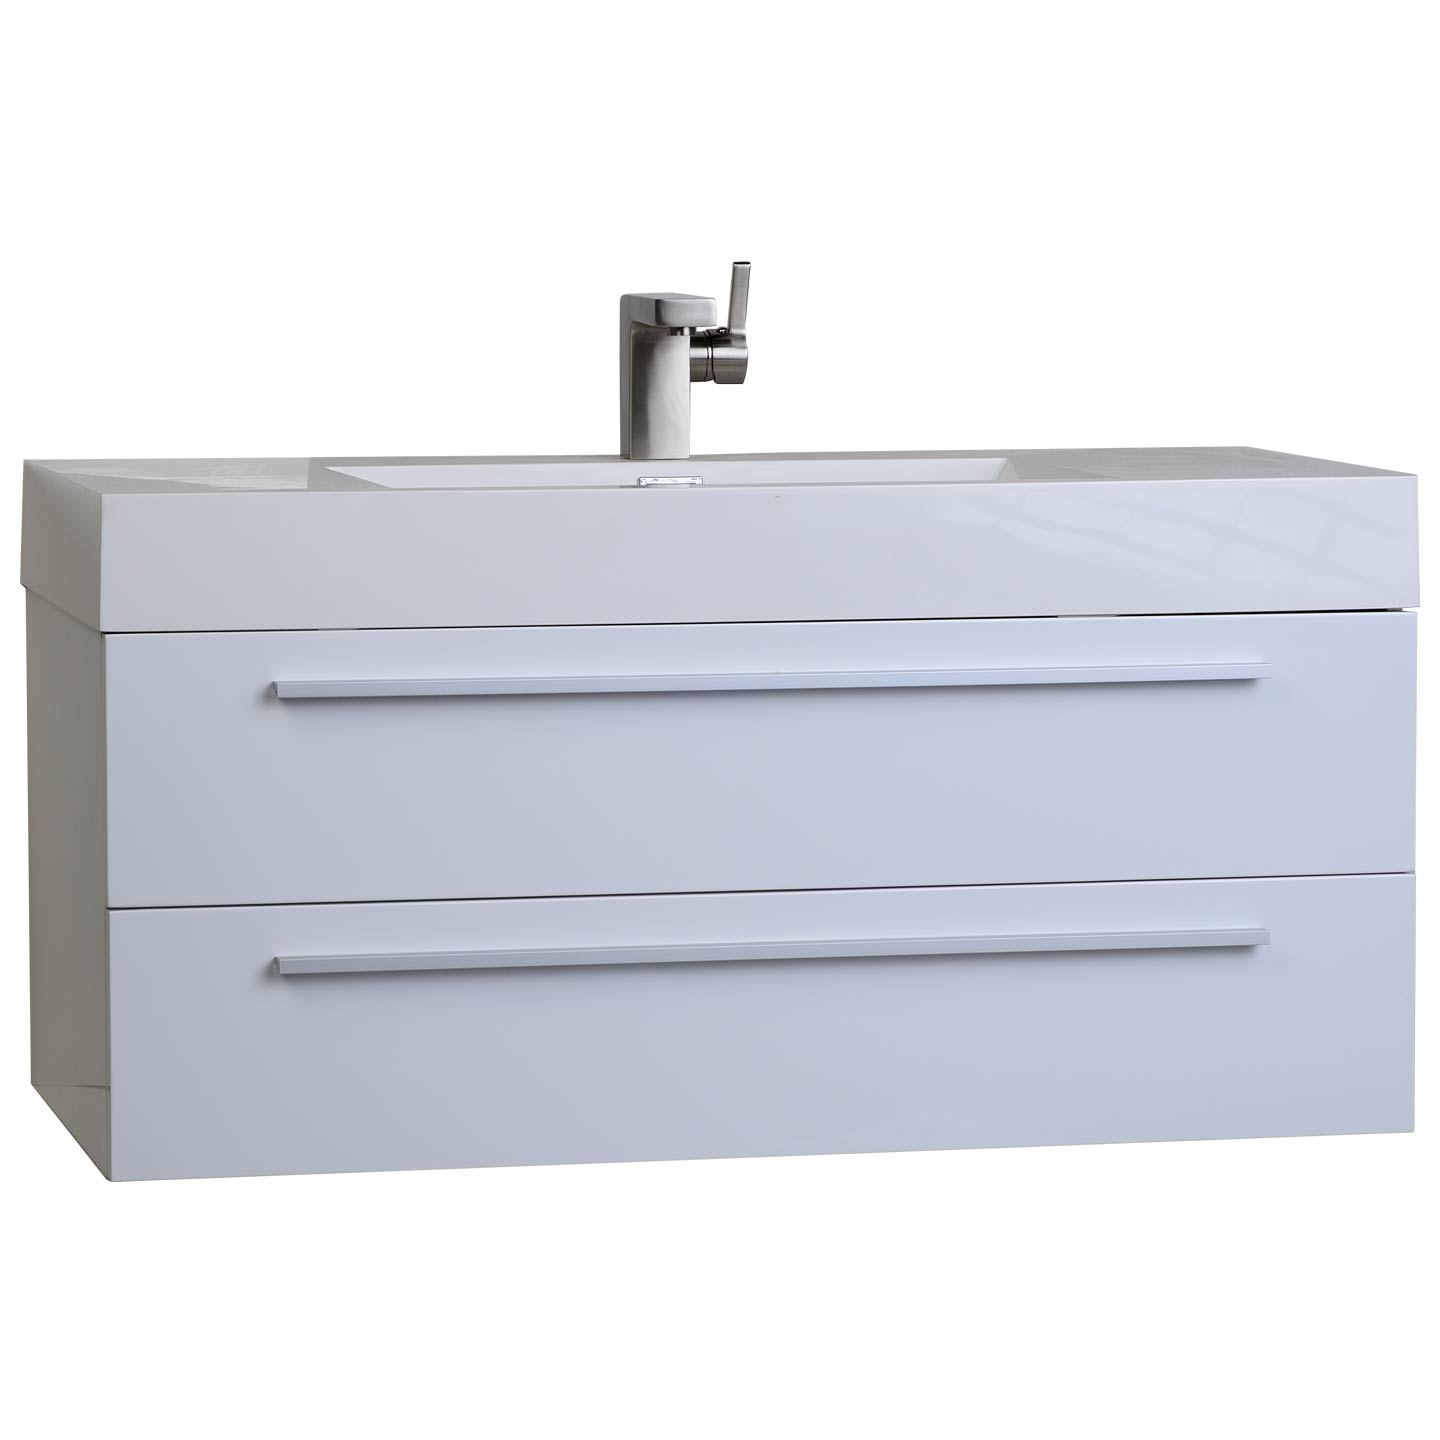 35.5 In. Wall-Mount Modern Bathroom Vanity in High Gloss White TN ...